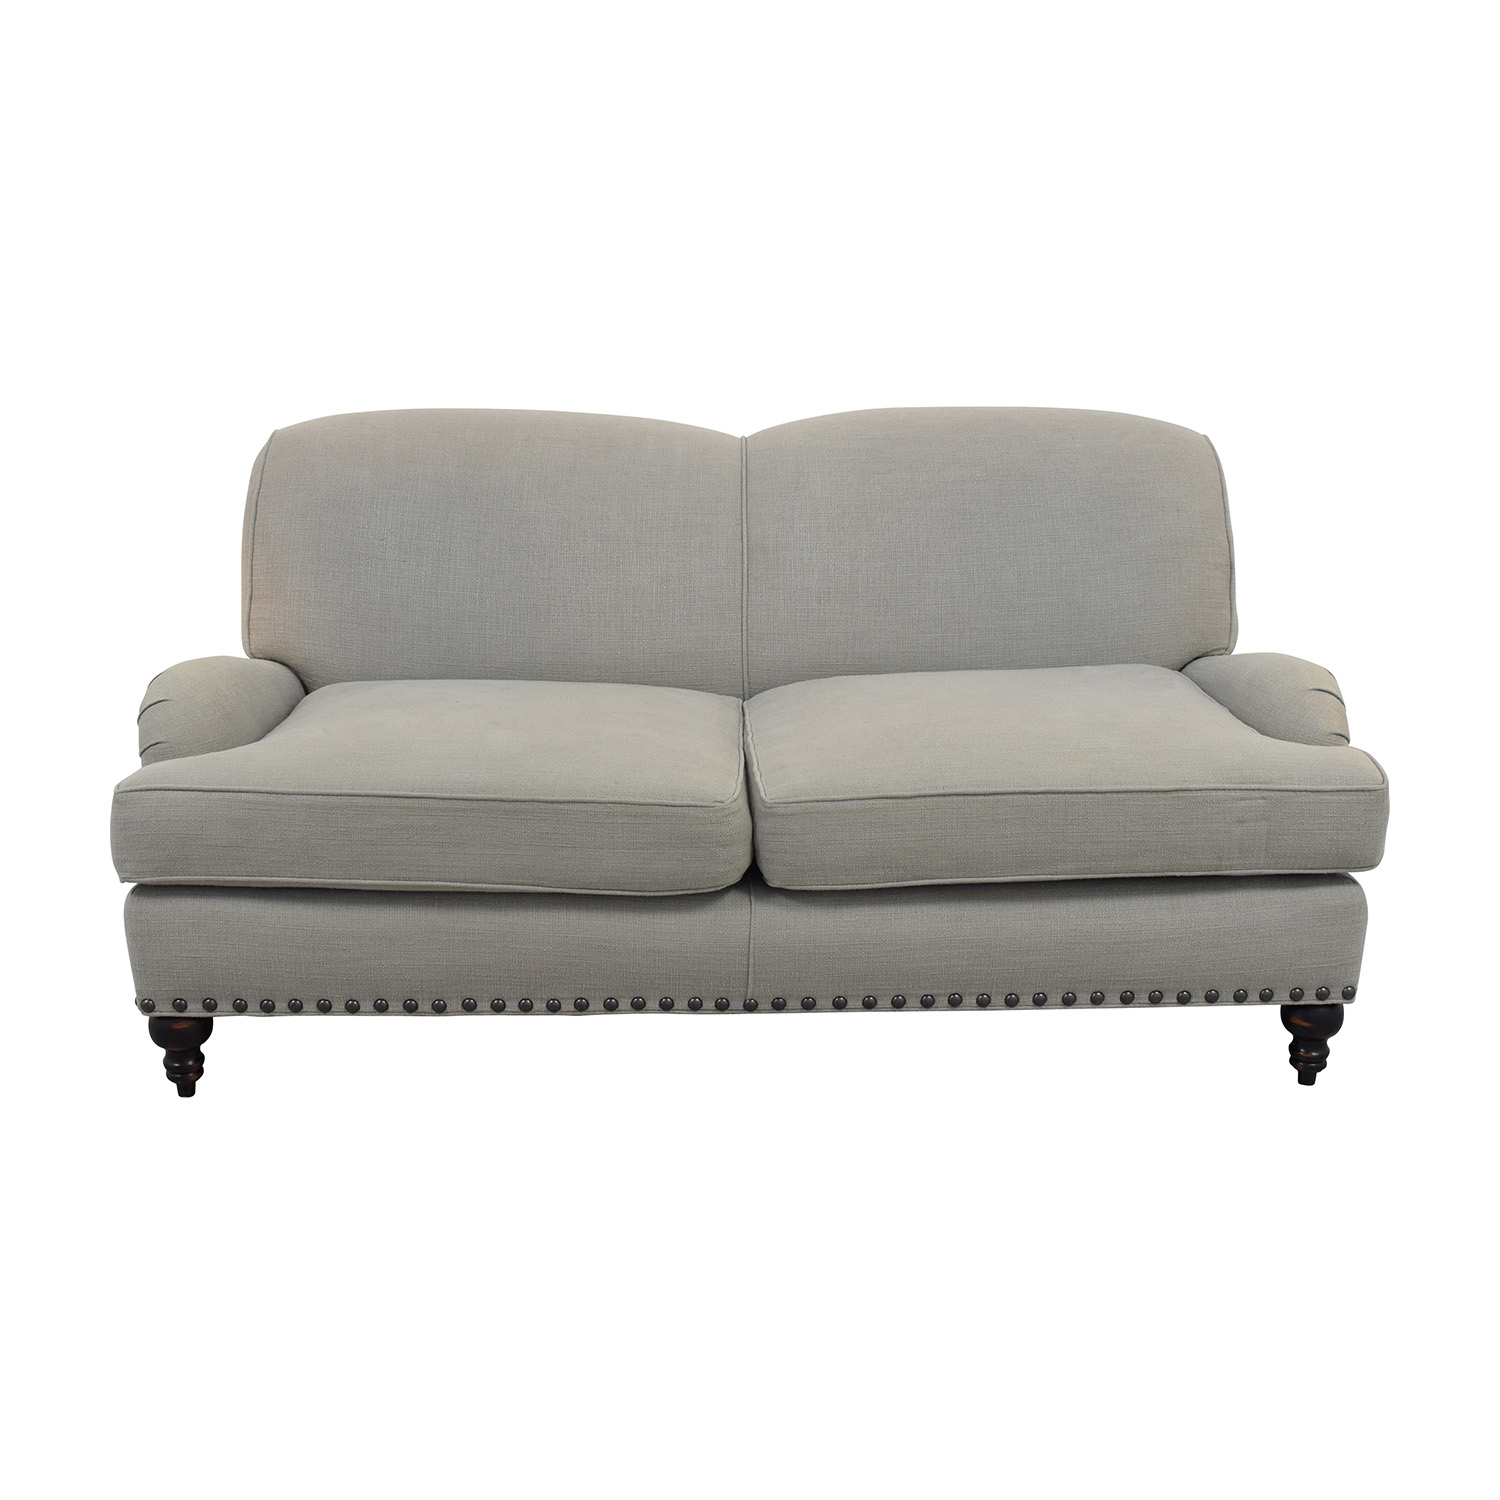 arhaus leather sofa where to buy cheap 69 off macy 39s tufted gray sofas